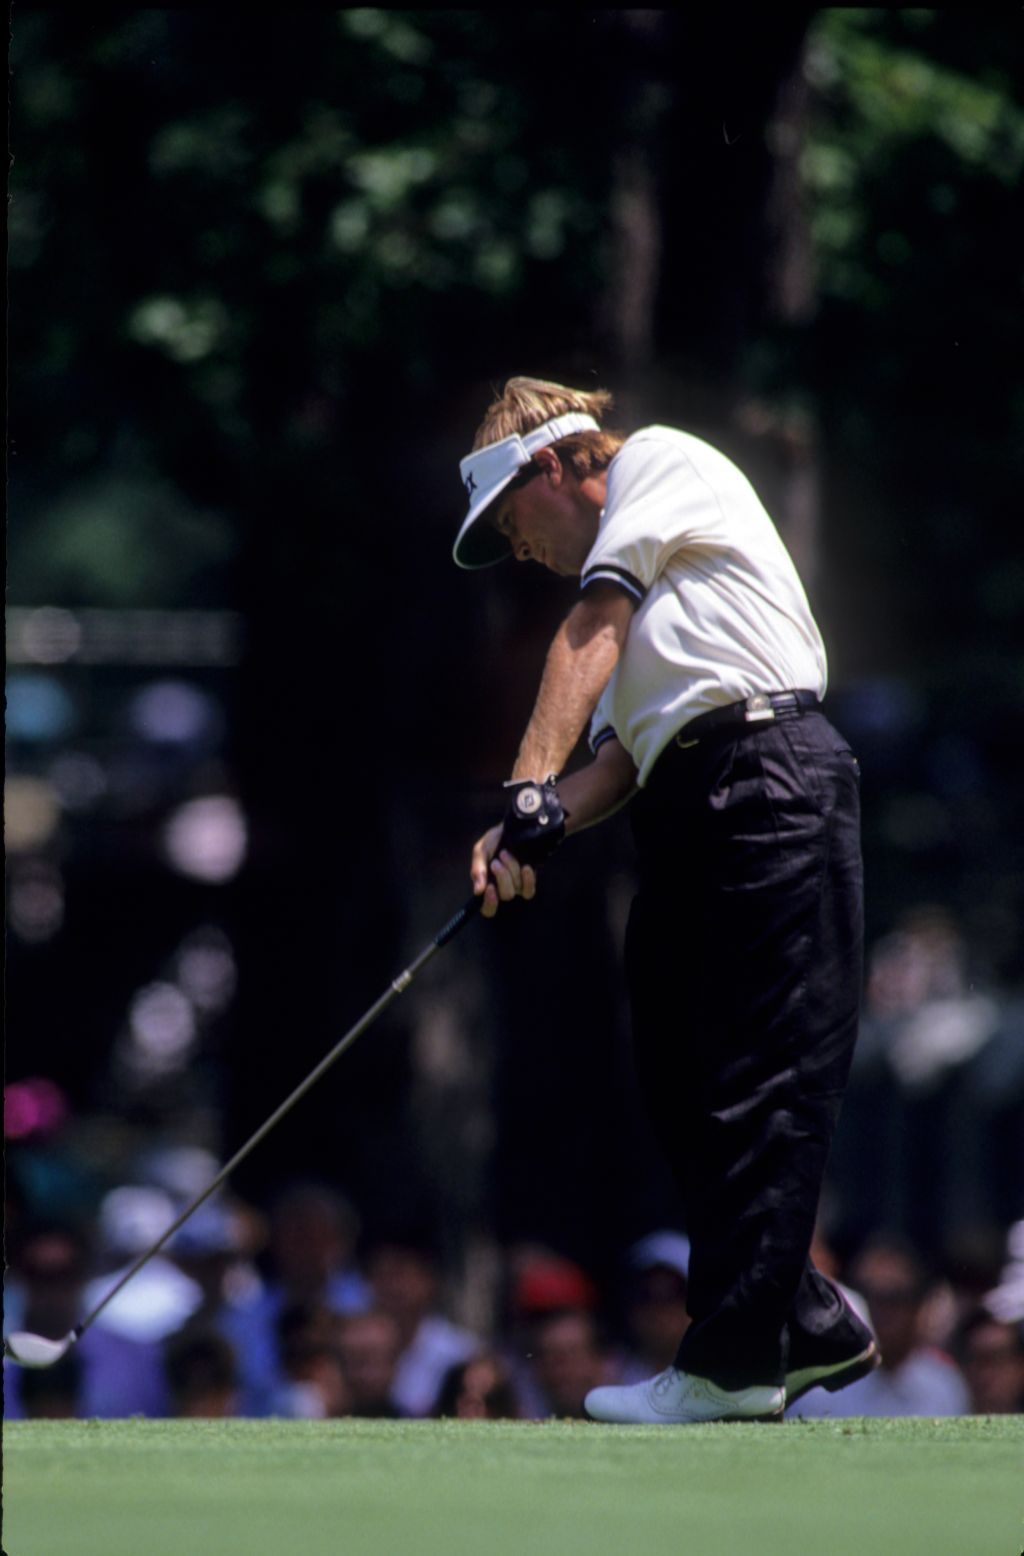 Jeff Sluman driving through the ball on the tee during the 1990 US Open